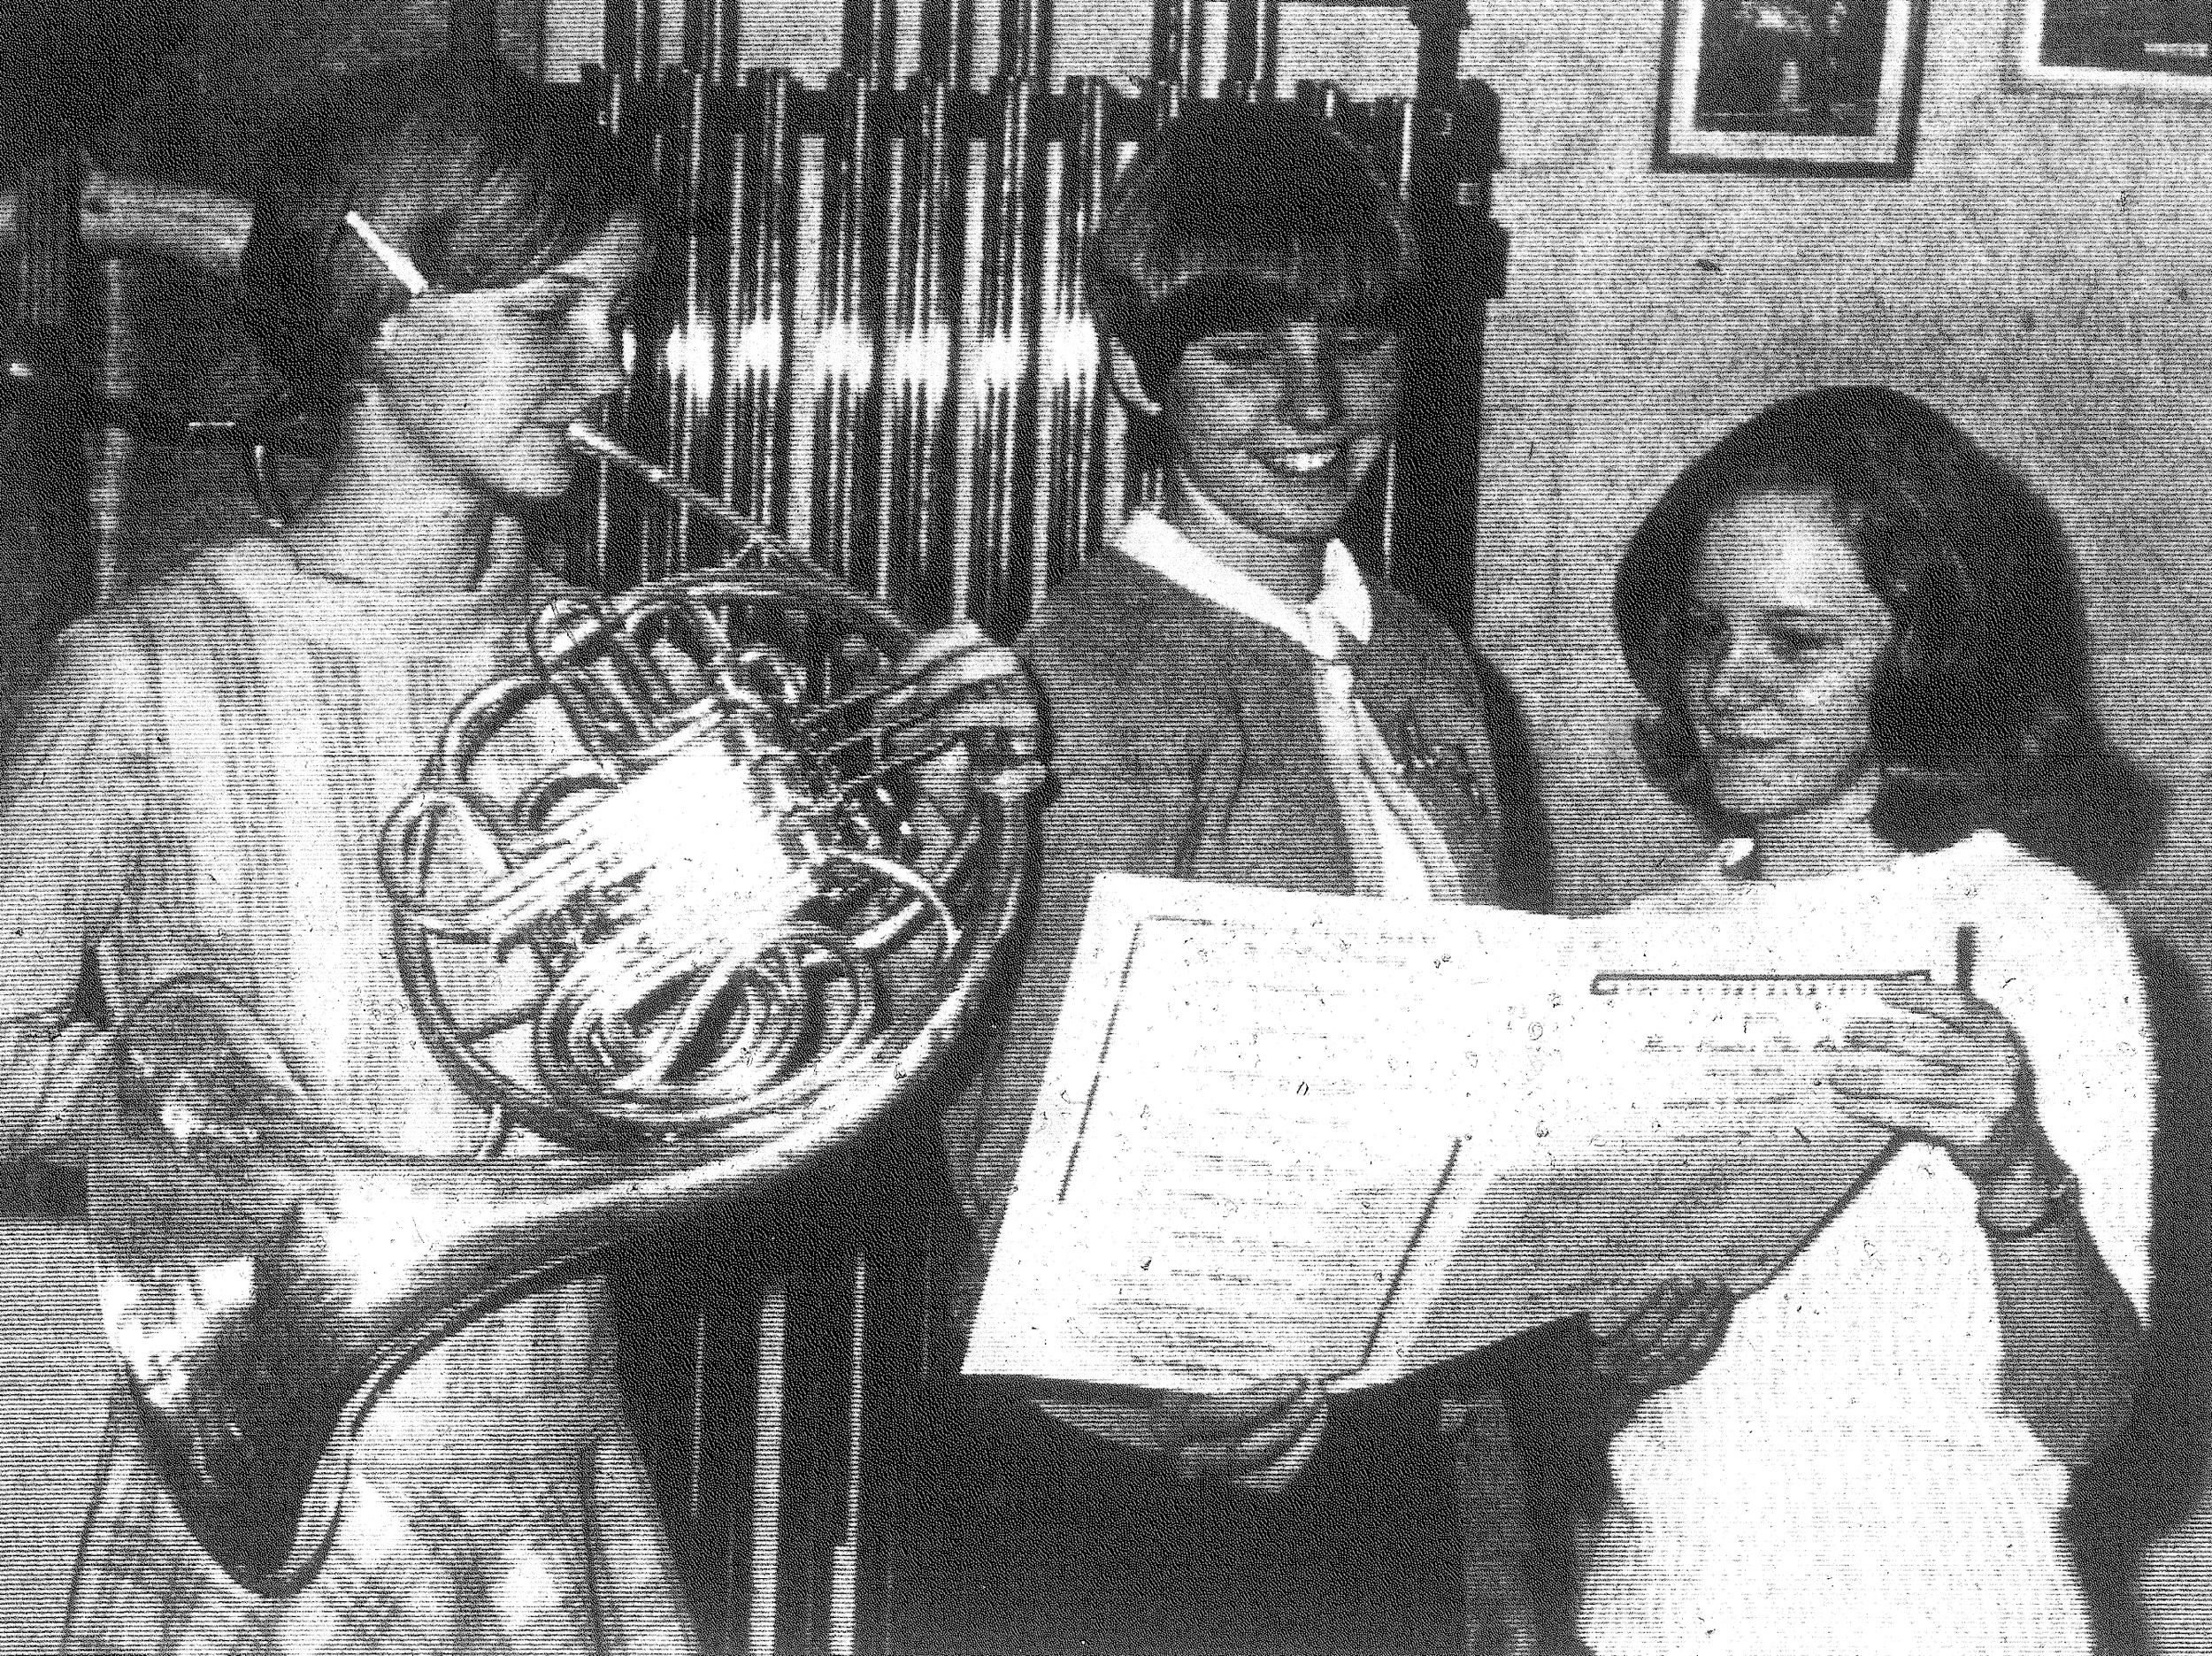 1968 - Cindy Dion practices with her band instrument as Martha Craft and Anne Hinson hold the music for her. All three girls, including Fran Wells, who is not in the photo, are members of the Manning High School Band. They were selected recently by auditions to participate in the current All-State Band. George Olin is the director of music at Manning High.